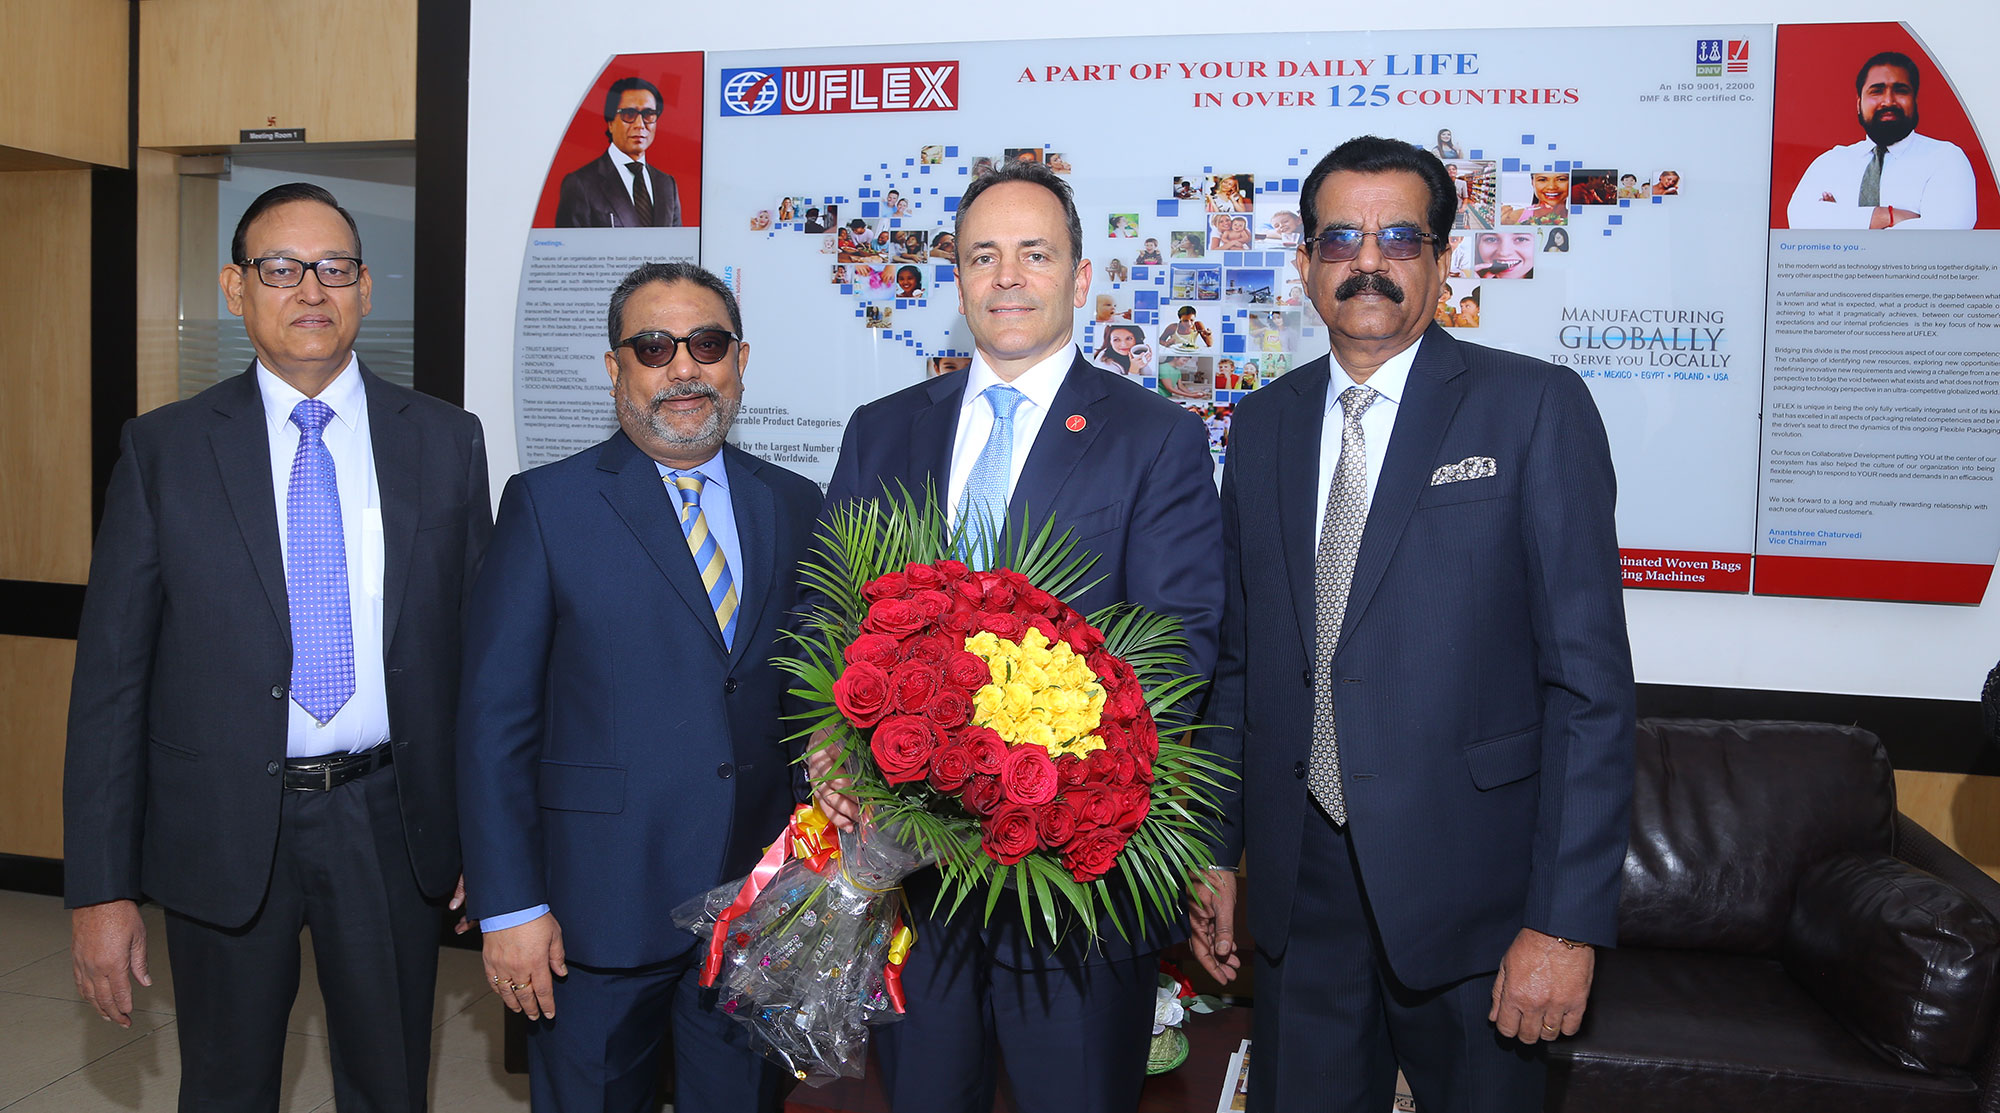 L-R 1- Dilip Dosi, Jt Pres - Prod & Ops- Films Business, Uflex; 2-Chandan Chattaraj, Pres-Global HR, Uflex; 3 -Gov Matt Bevin of Kentucky; 4-Jagmohan Mongia, Pres-Films Business, Uflex